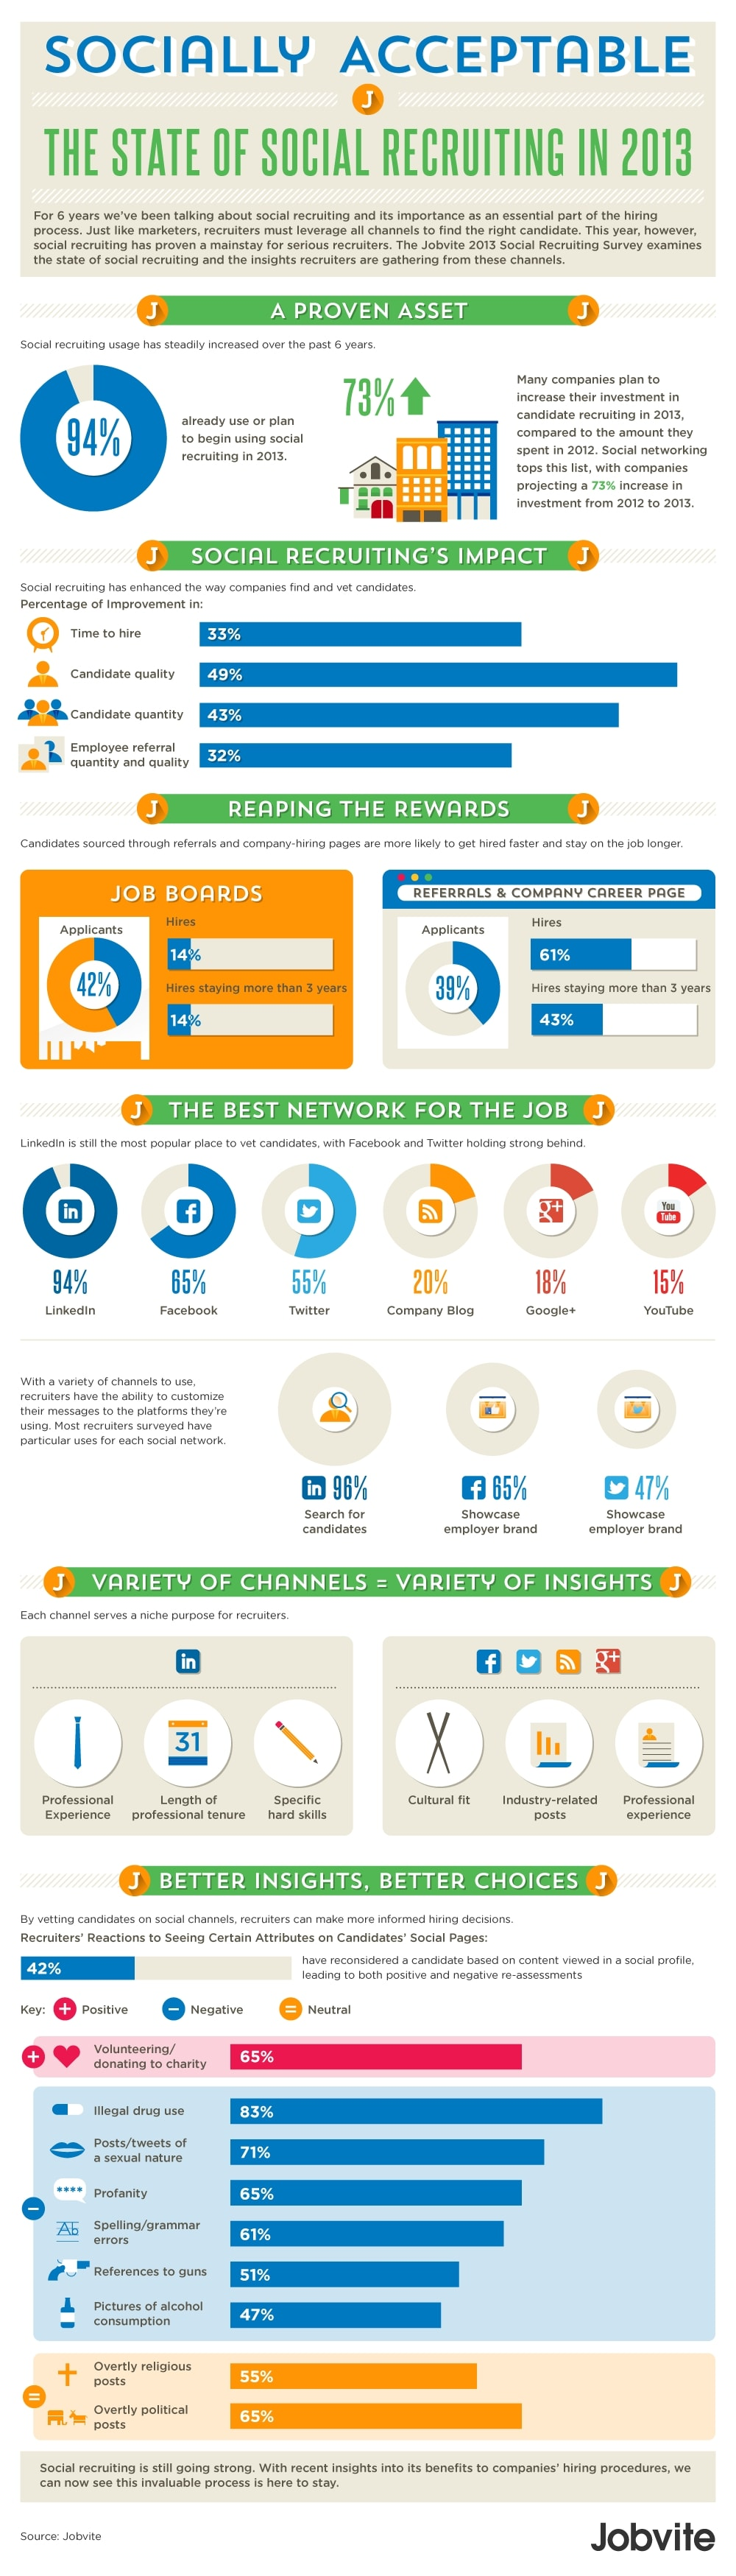 The State Of Social Recruiting In 2013 Infographic